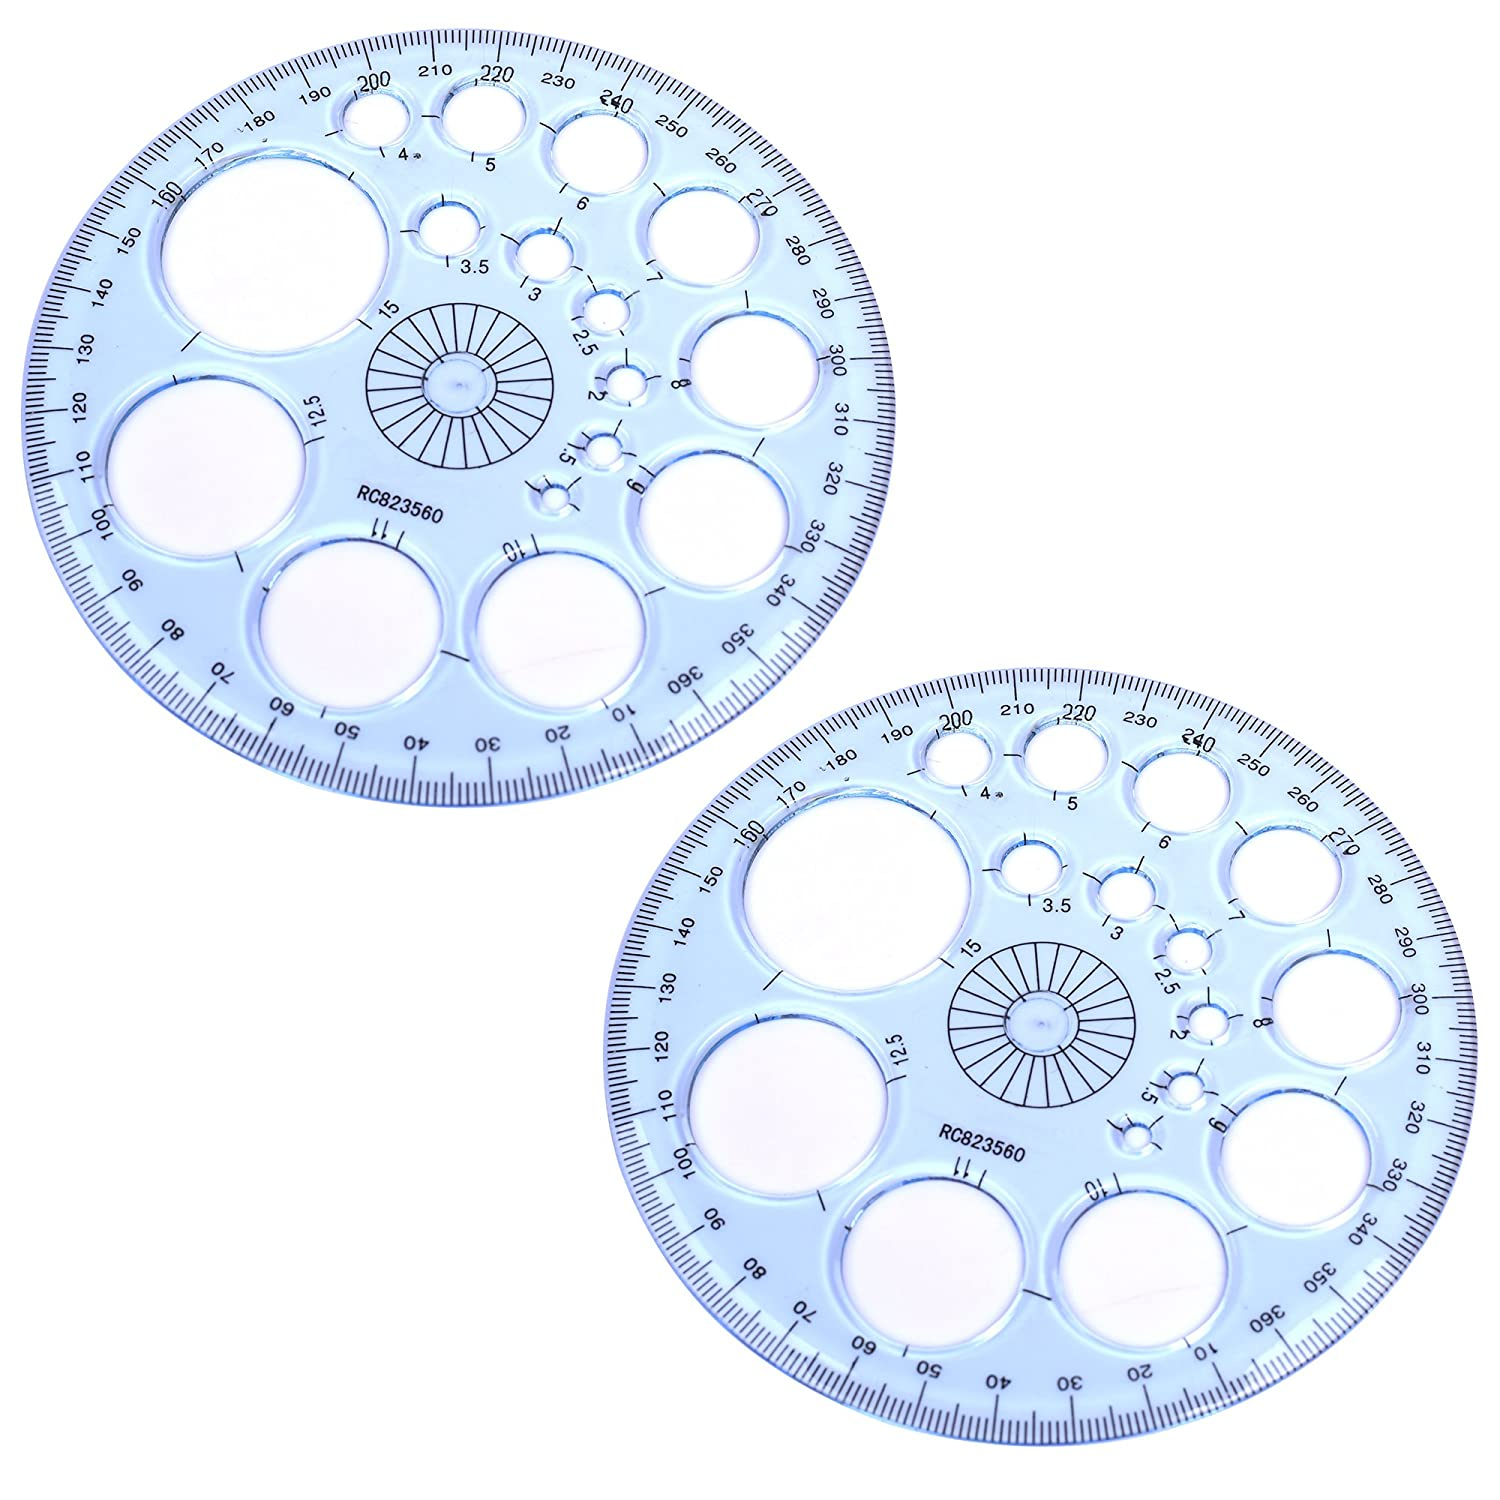 COSMOS Pack of 2 360 Degree Protractor and Circle Maker